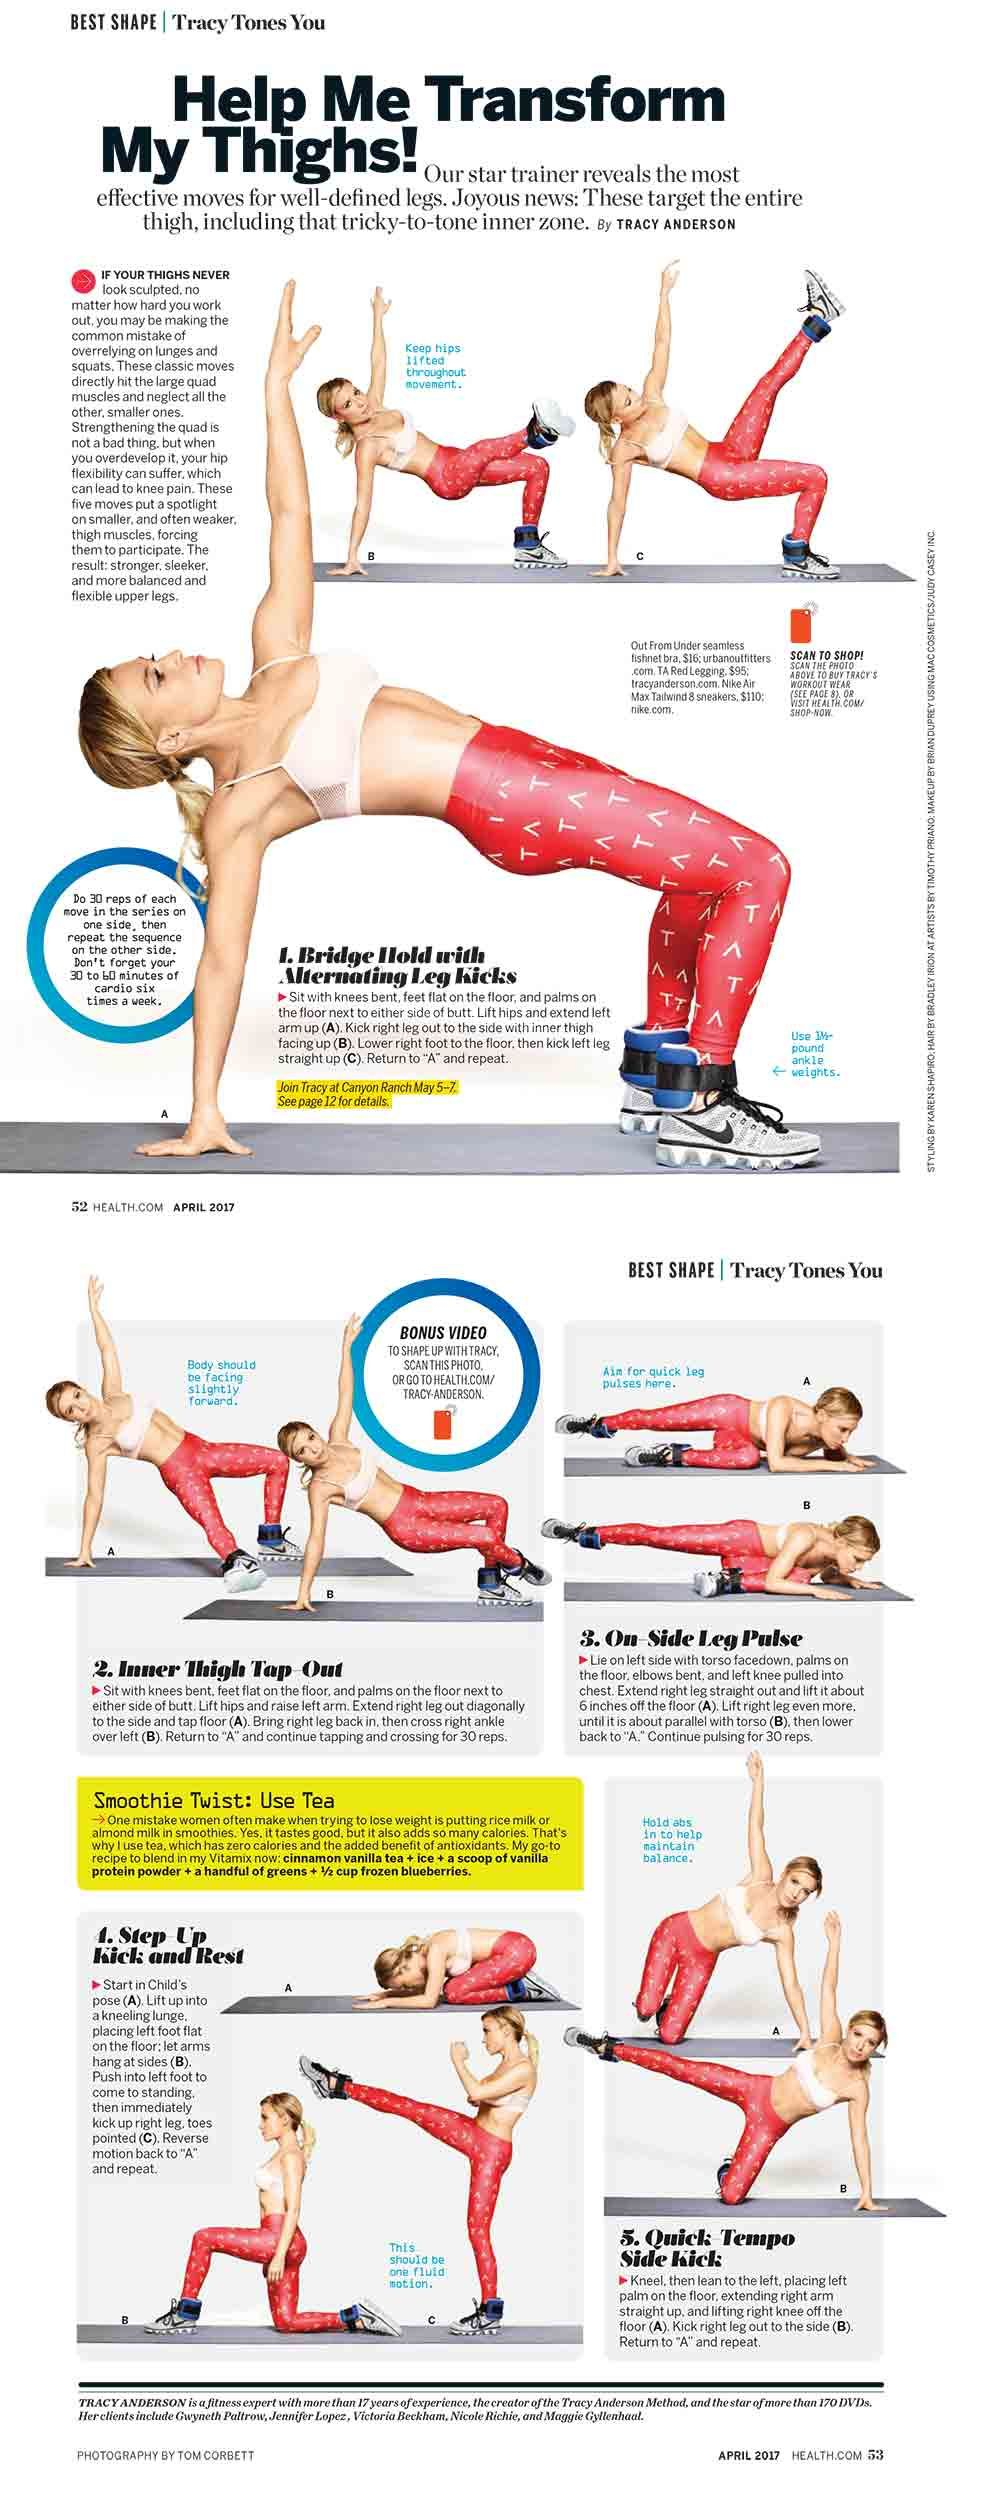 Help Me Transform My Thighs! by Tracy Anderson in Health mag